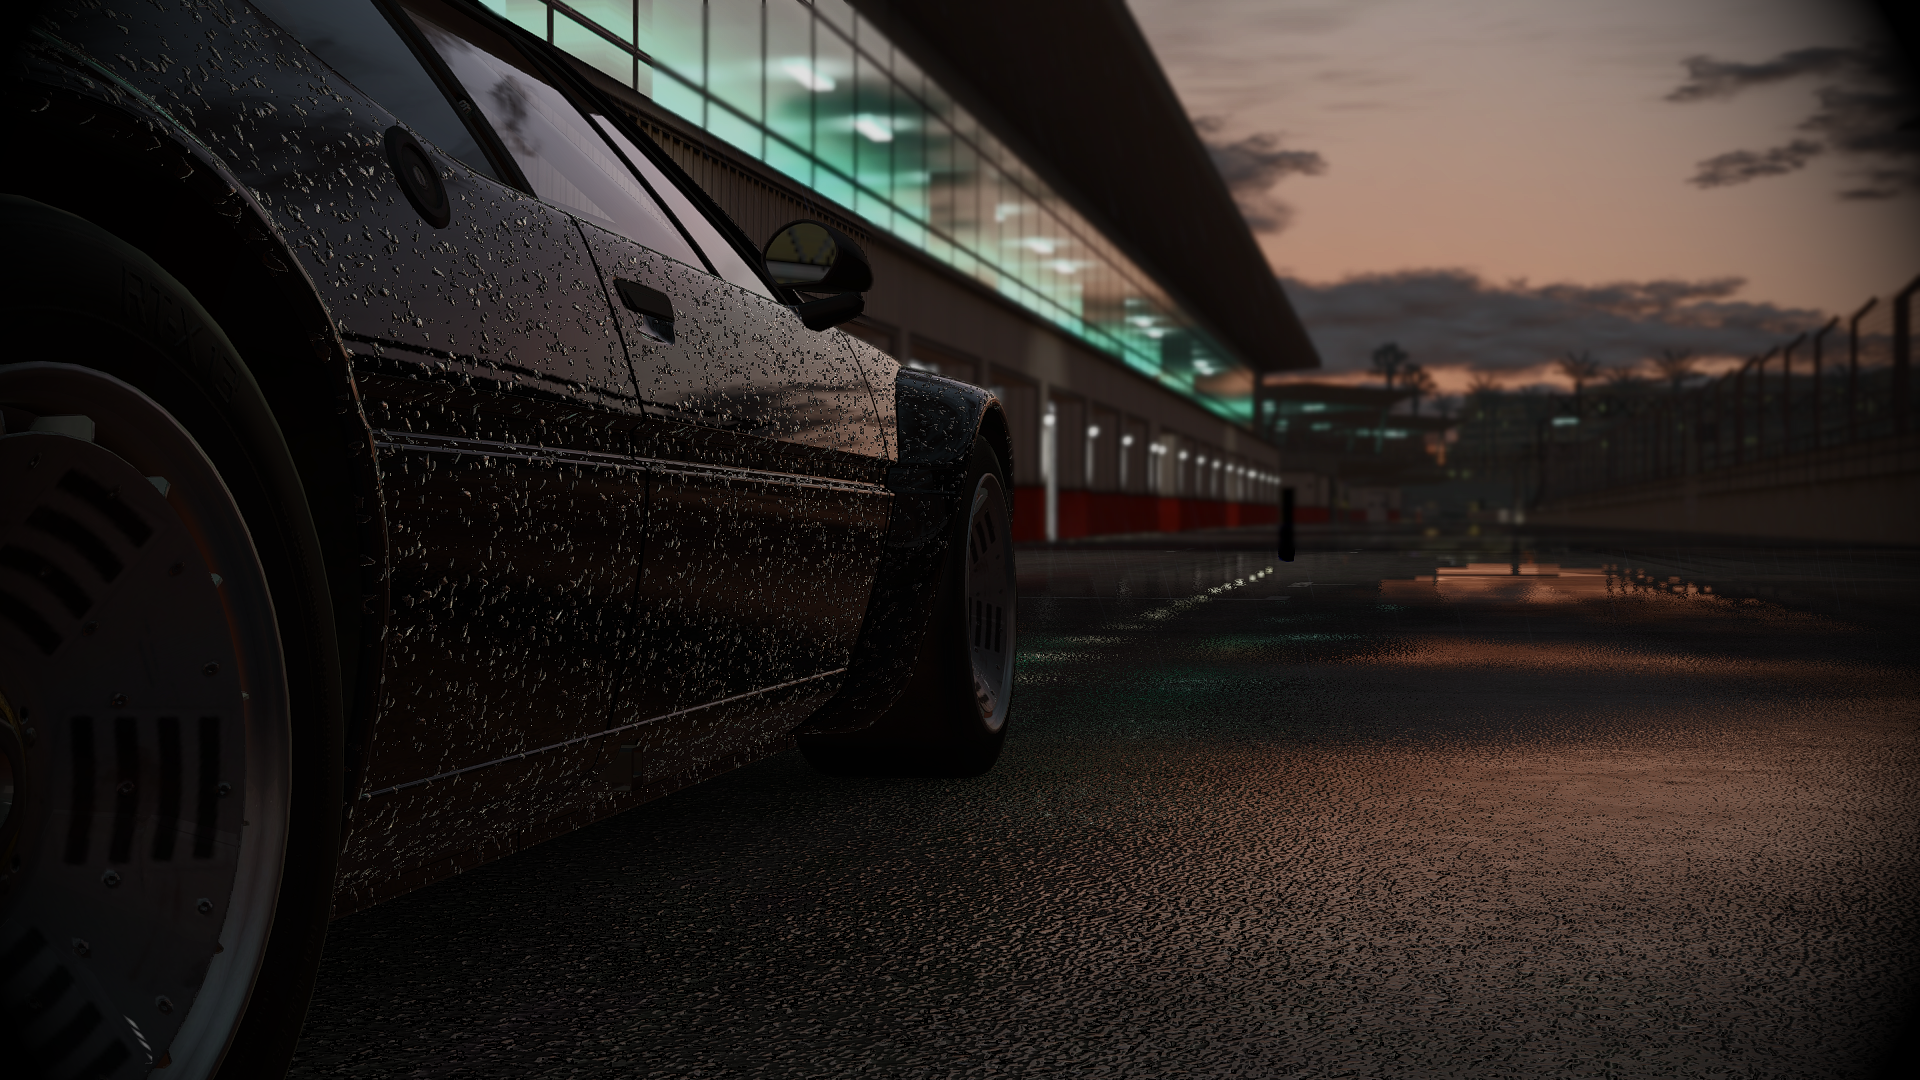 pcars2012-12-1103-32-bxkmd.png